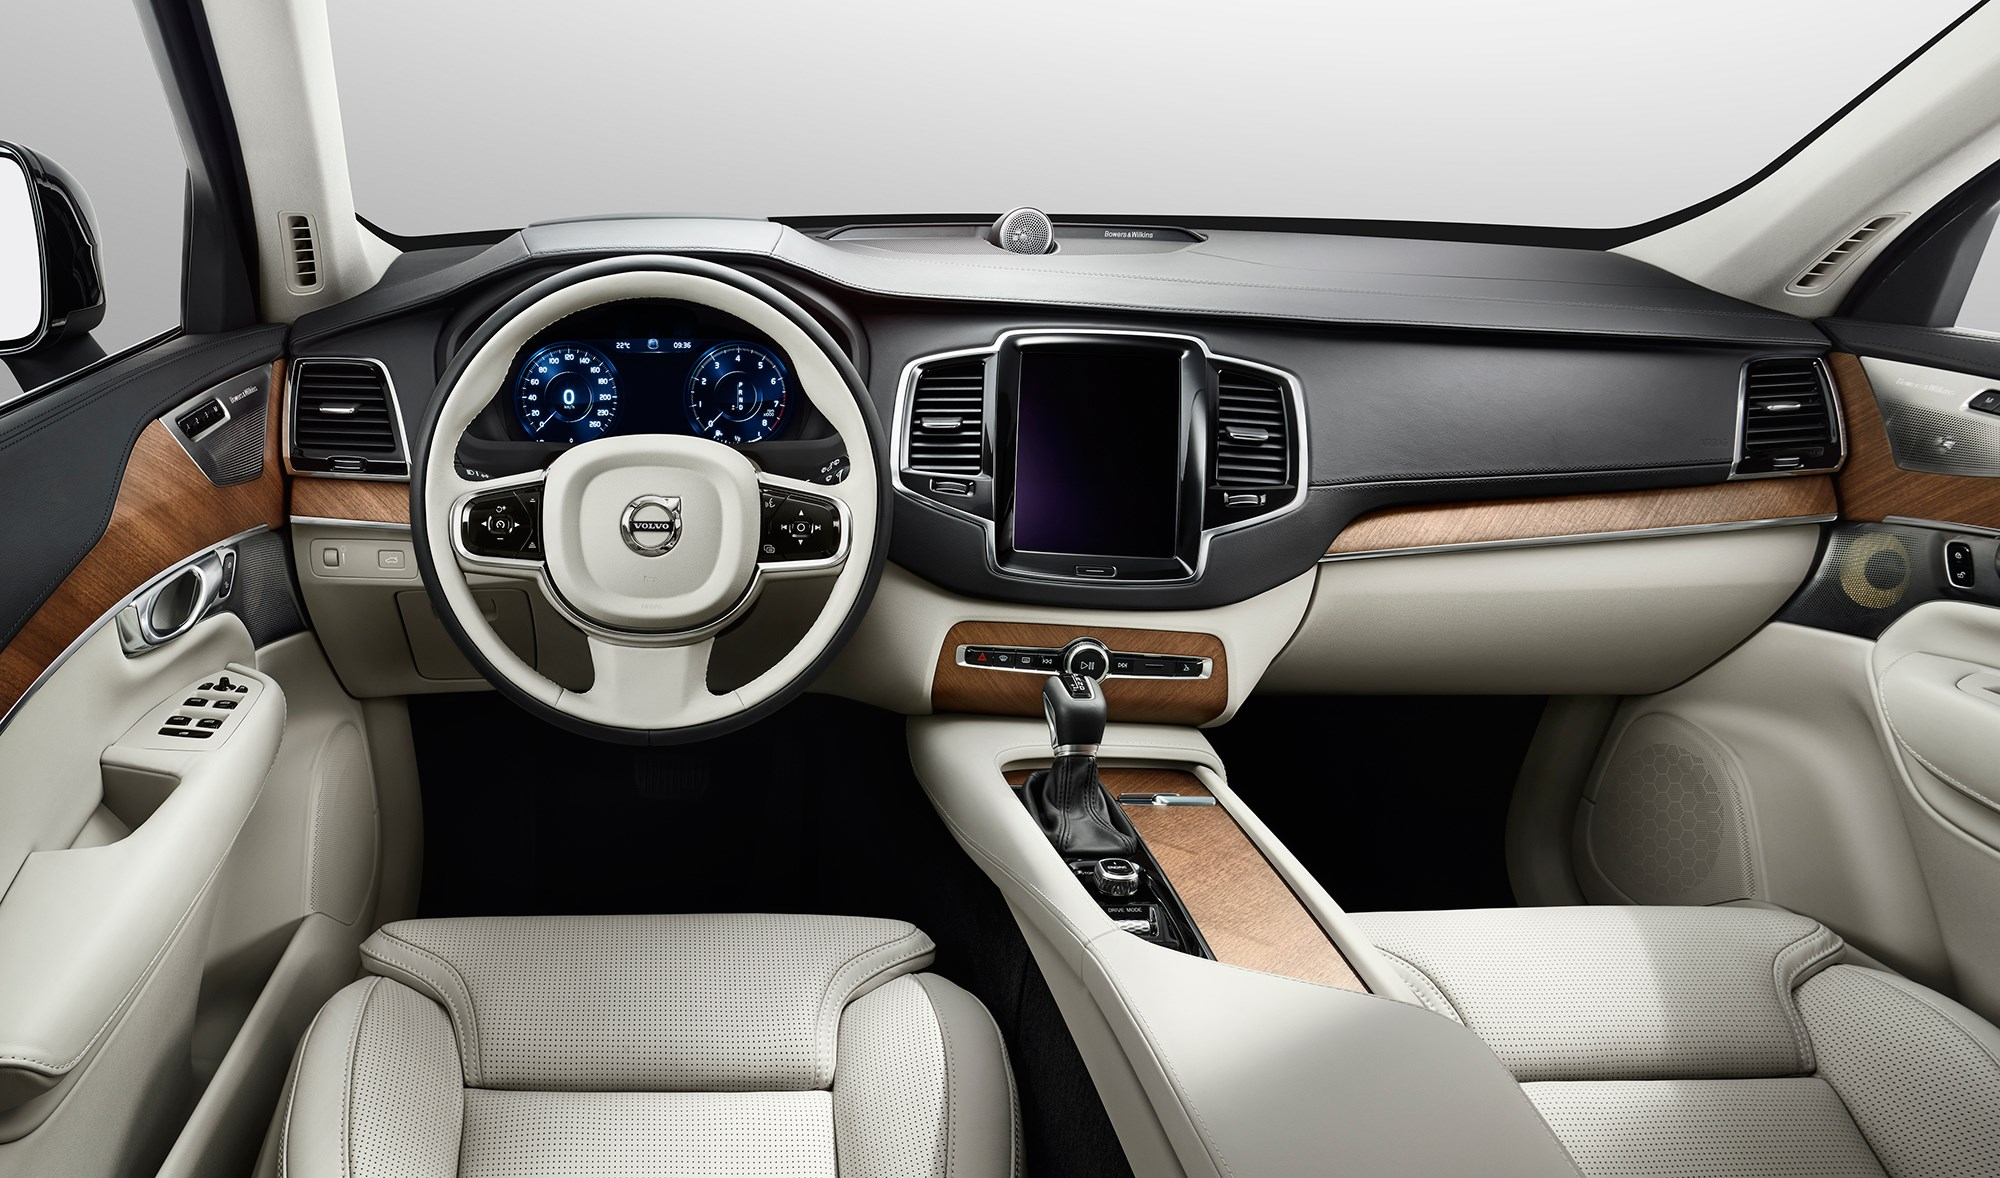 Volvo xc90 d5 2015 review car magazine the xc90s cabin one of its aces publicscrutiny Image collections